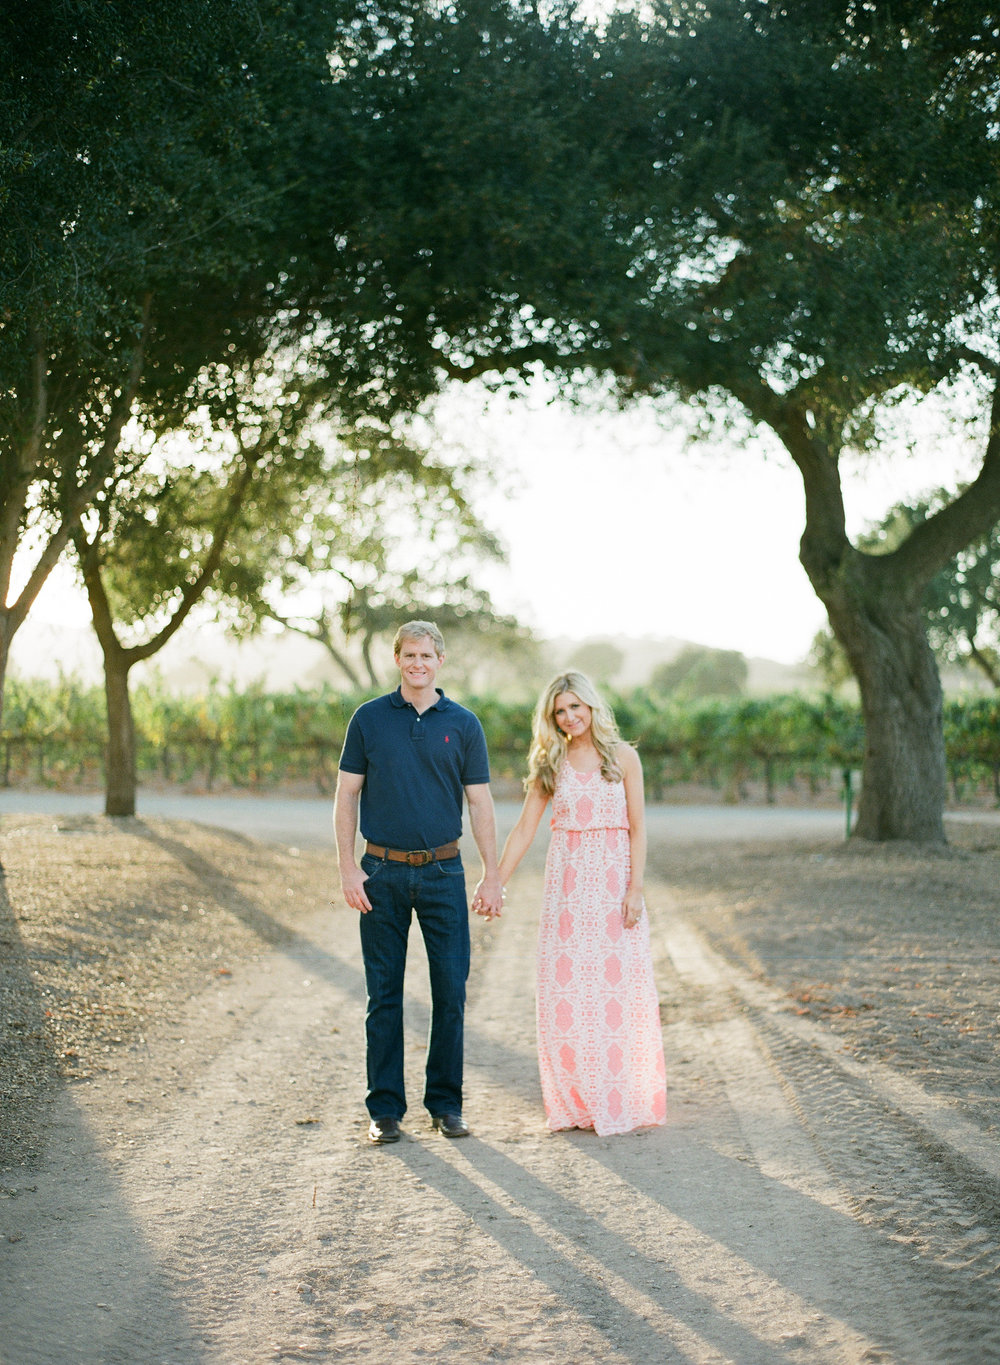 www.santabarbarawedding.com | Kristen Beinke | Engagement Session